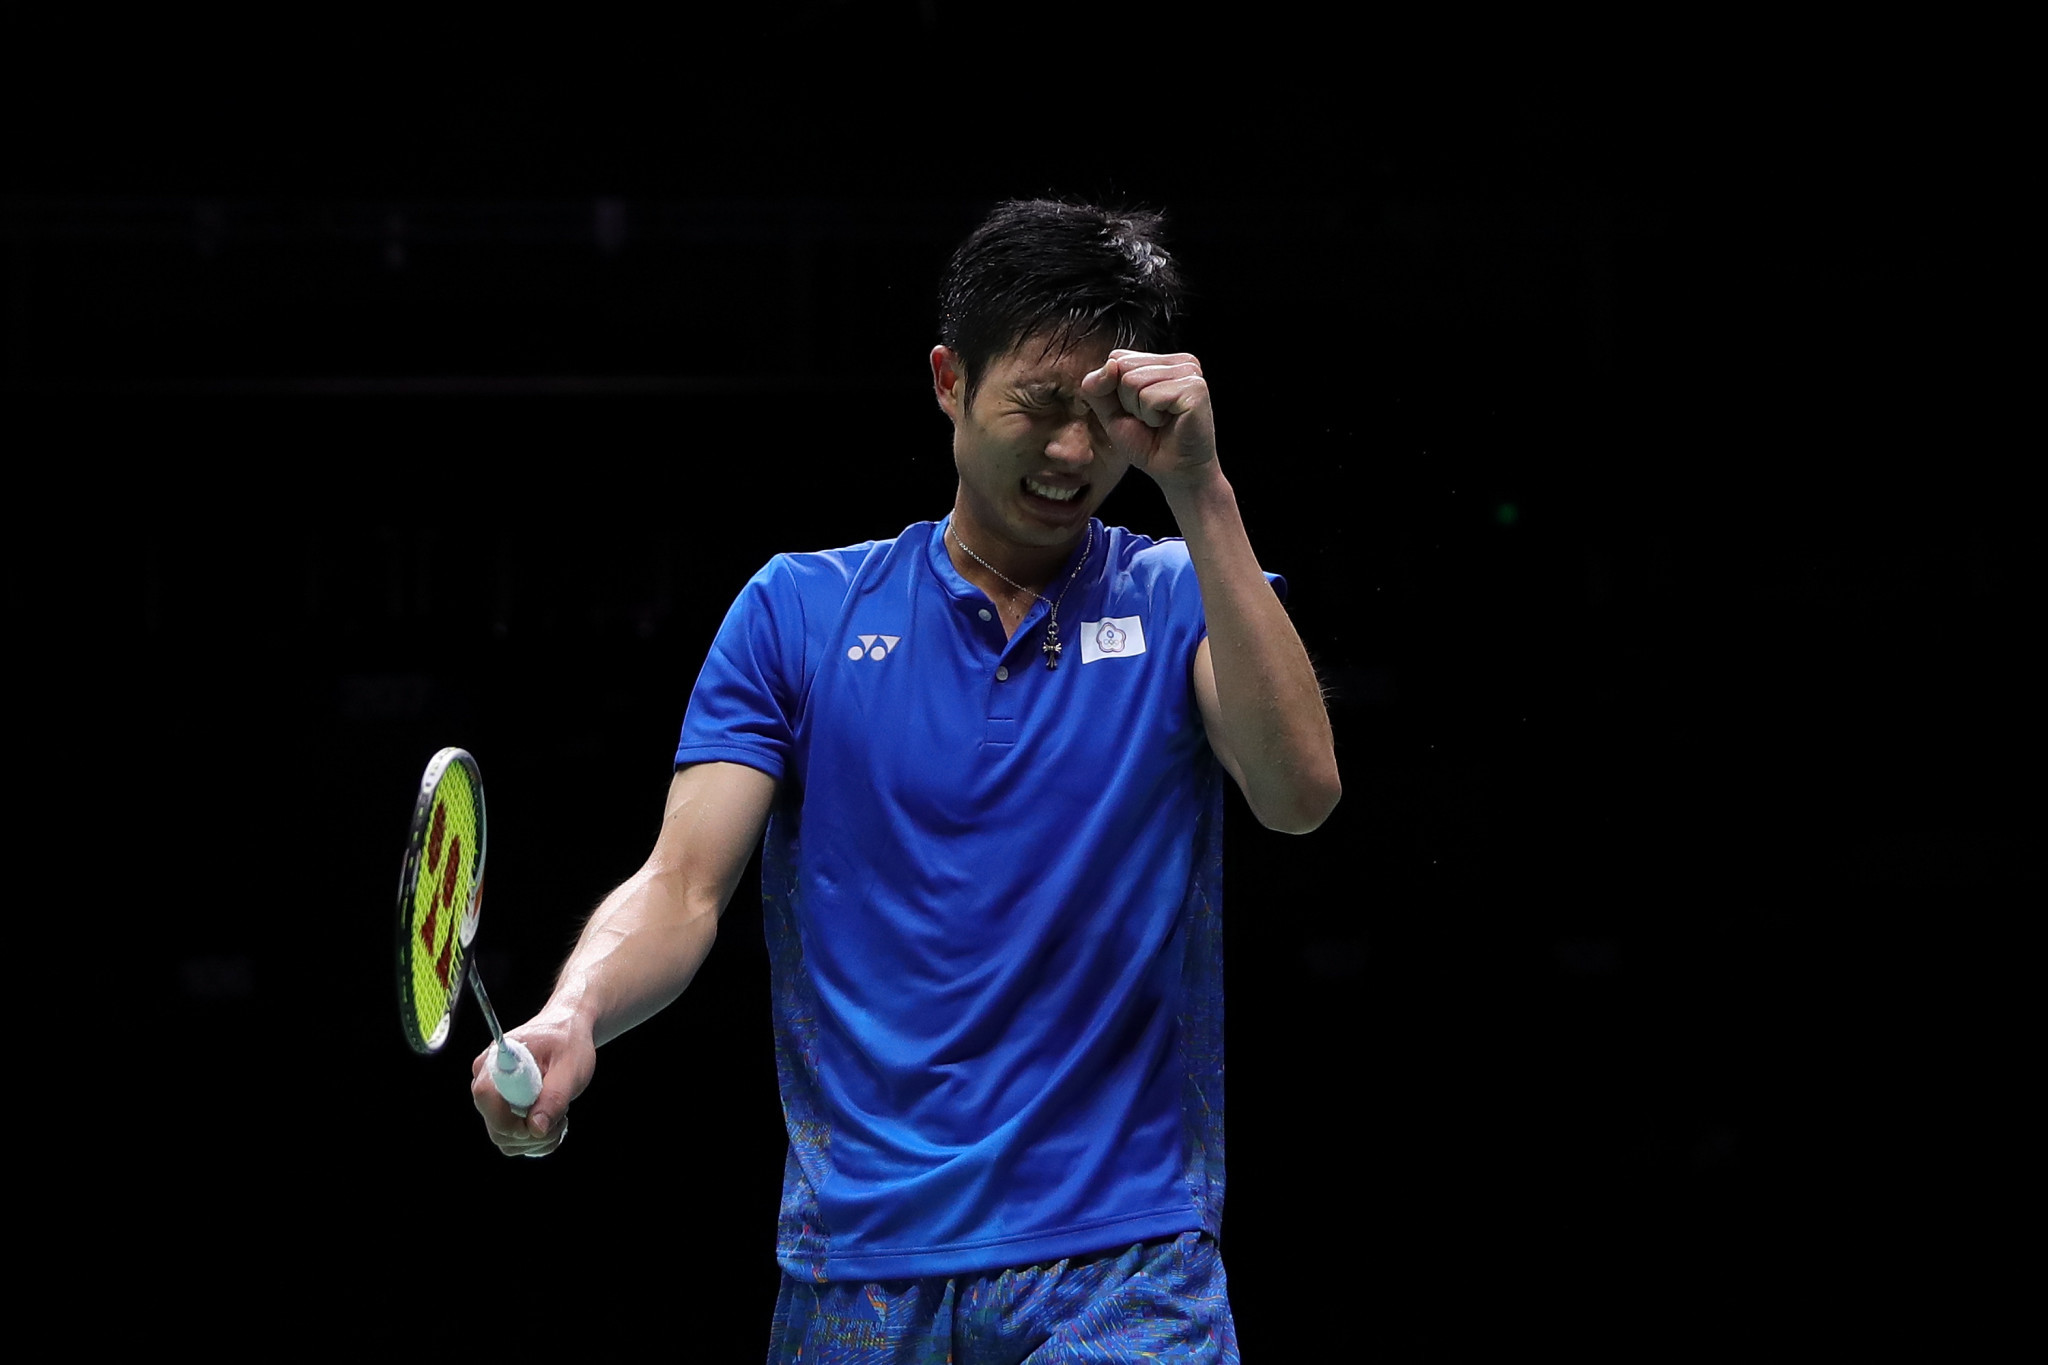 Chinese Taipei's Chou Tien-chen was the top seed going into the competition but has been knocked out in the semi-final of his home tournament ©Getty Images